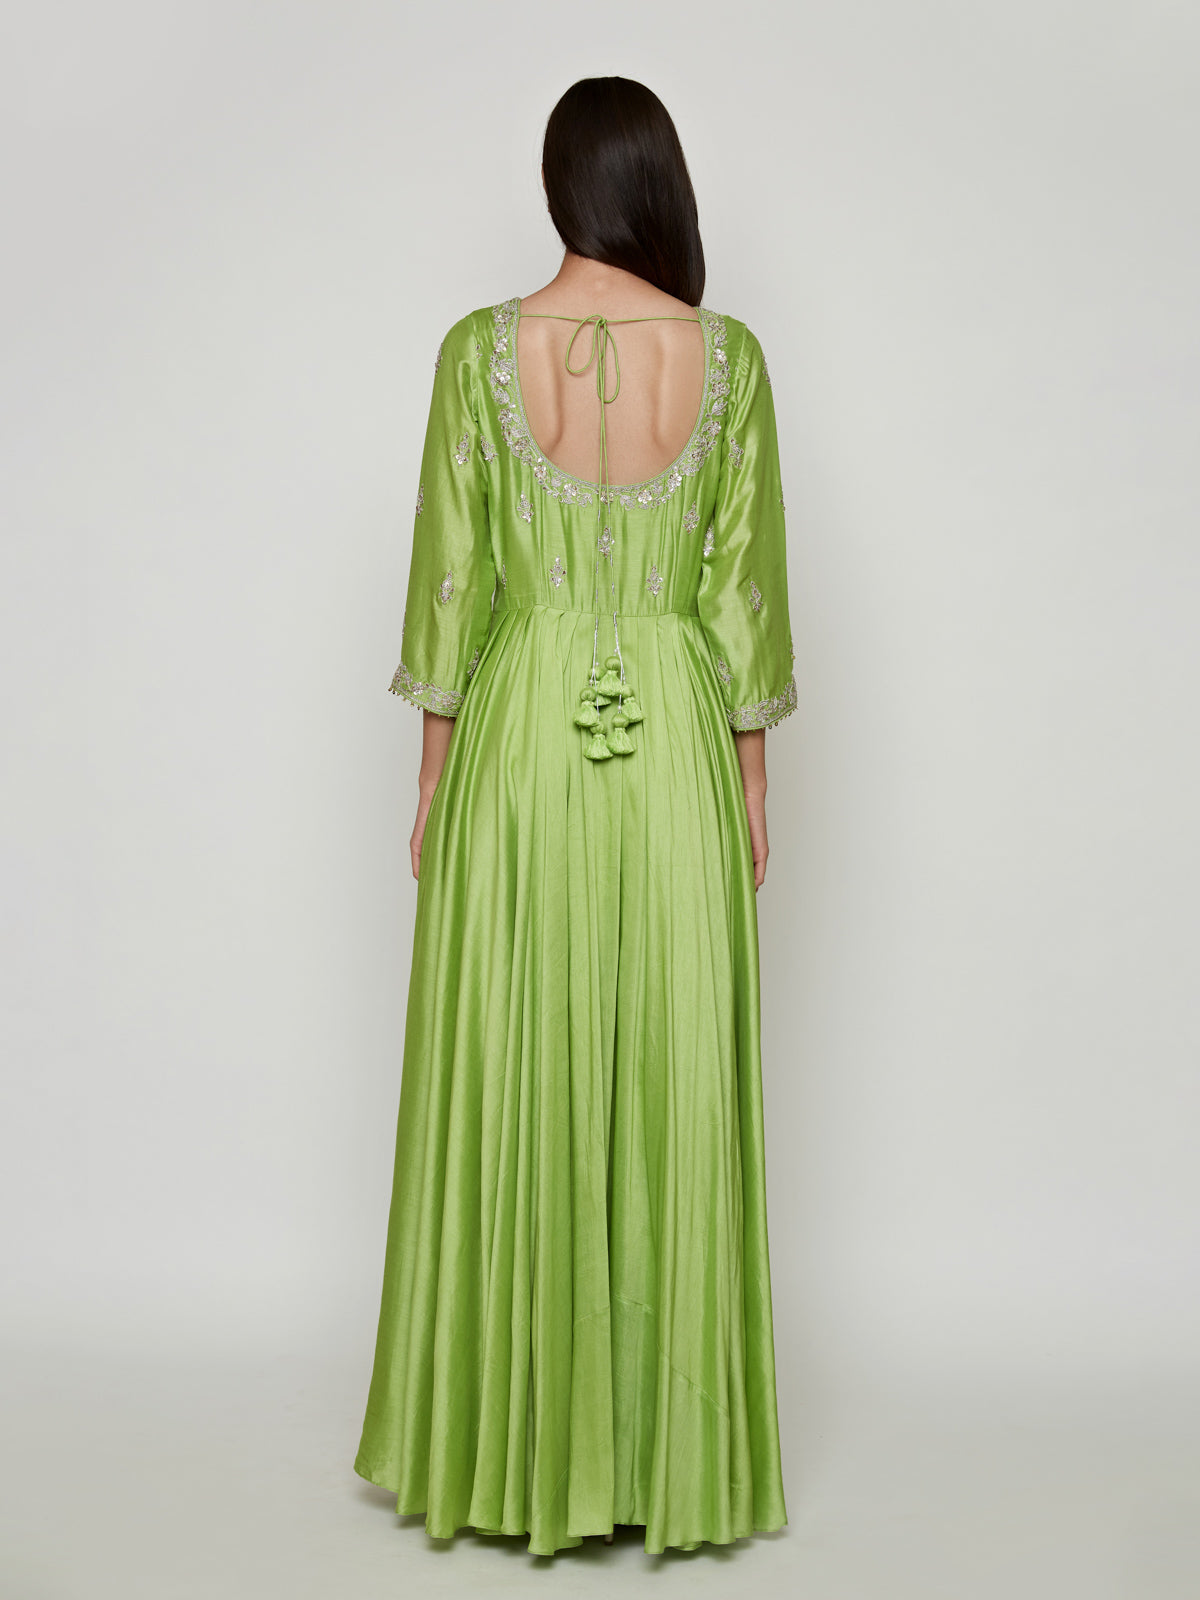 GREEN marodi embroidery dress